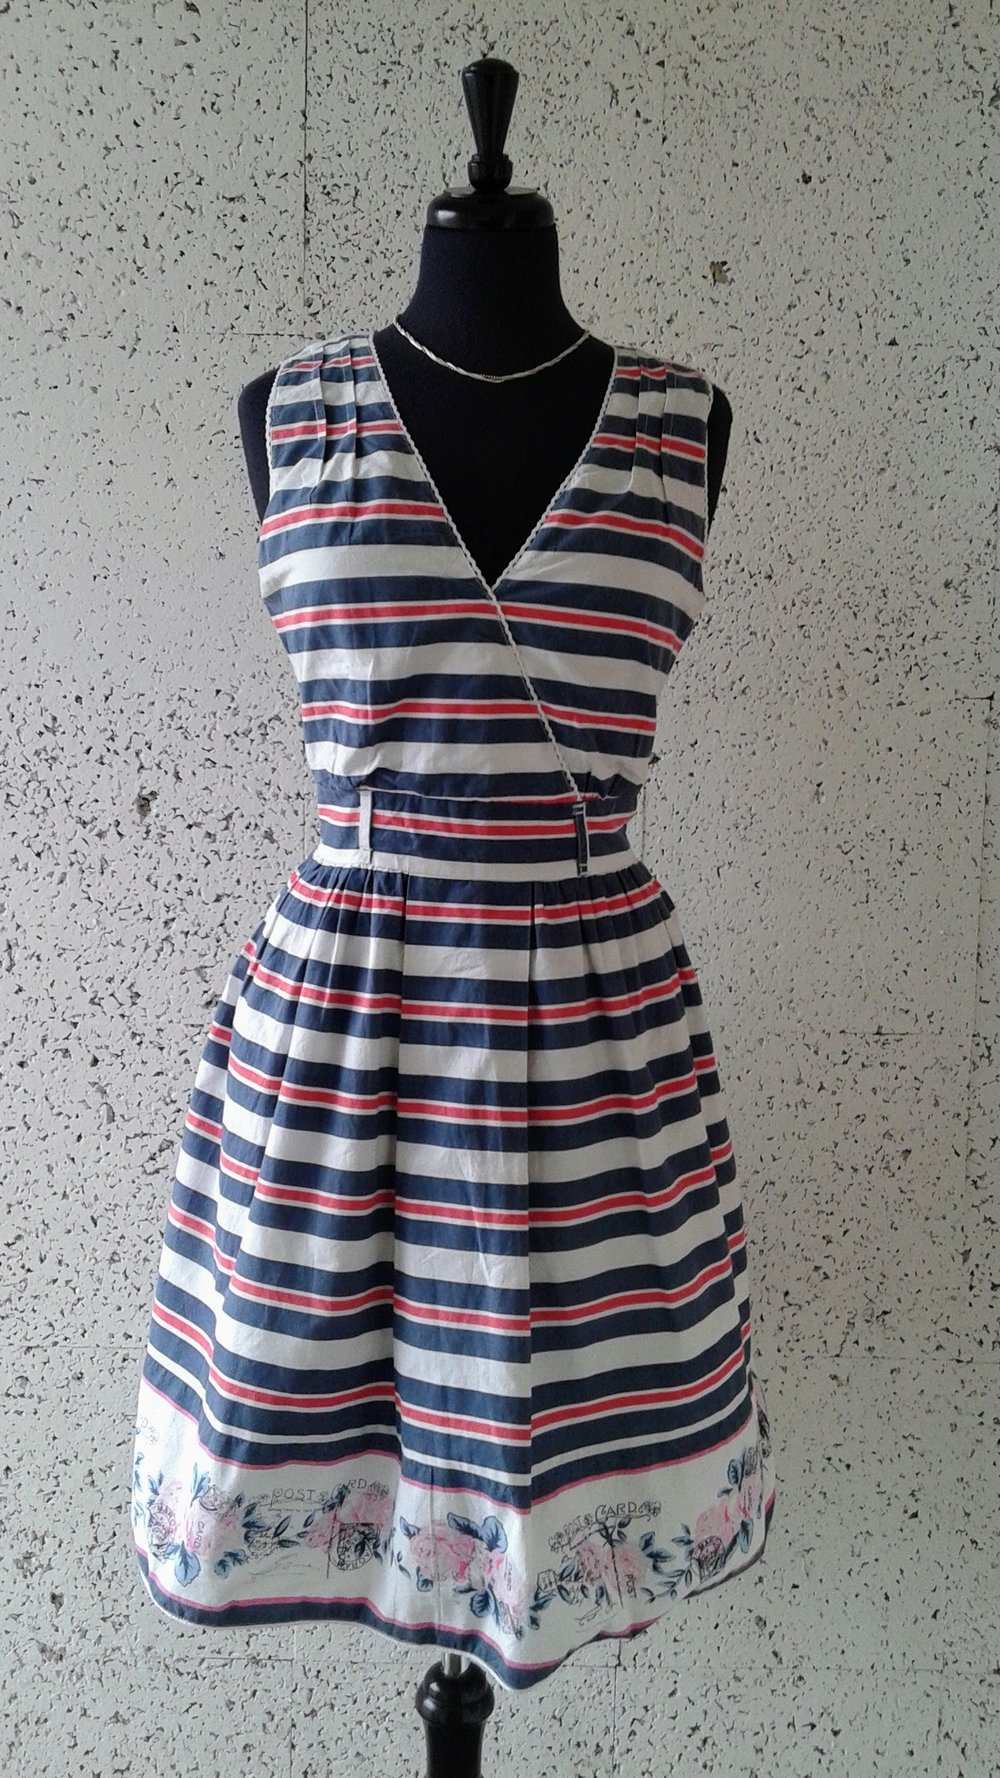 Yumi dress; Size 12, $38